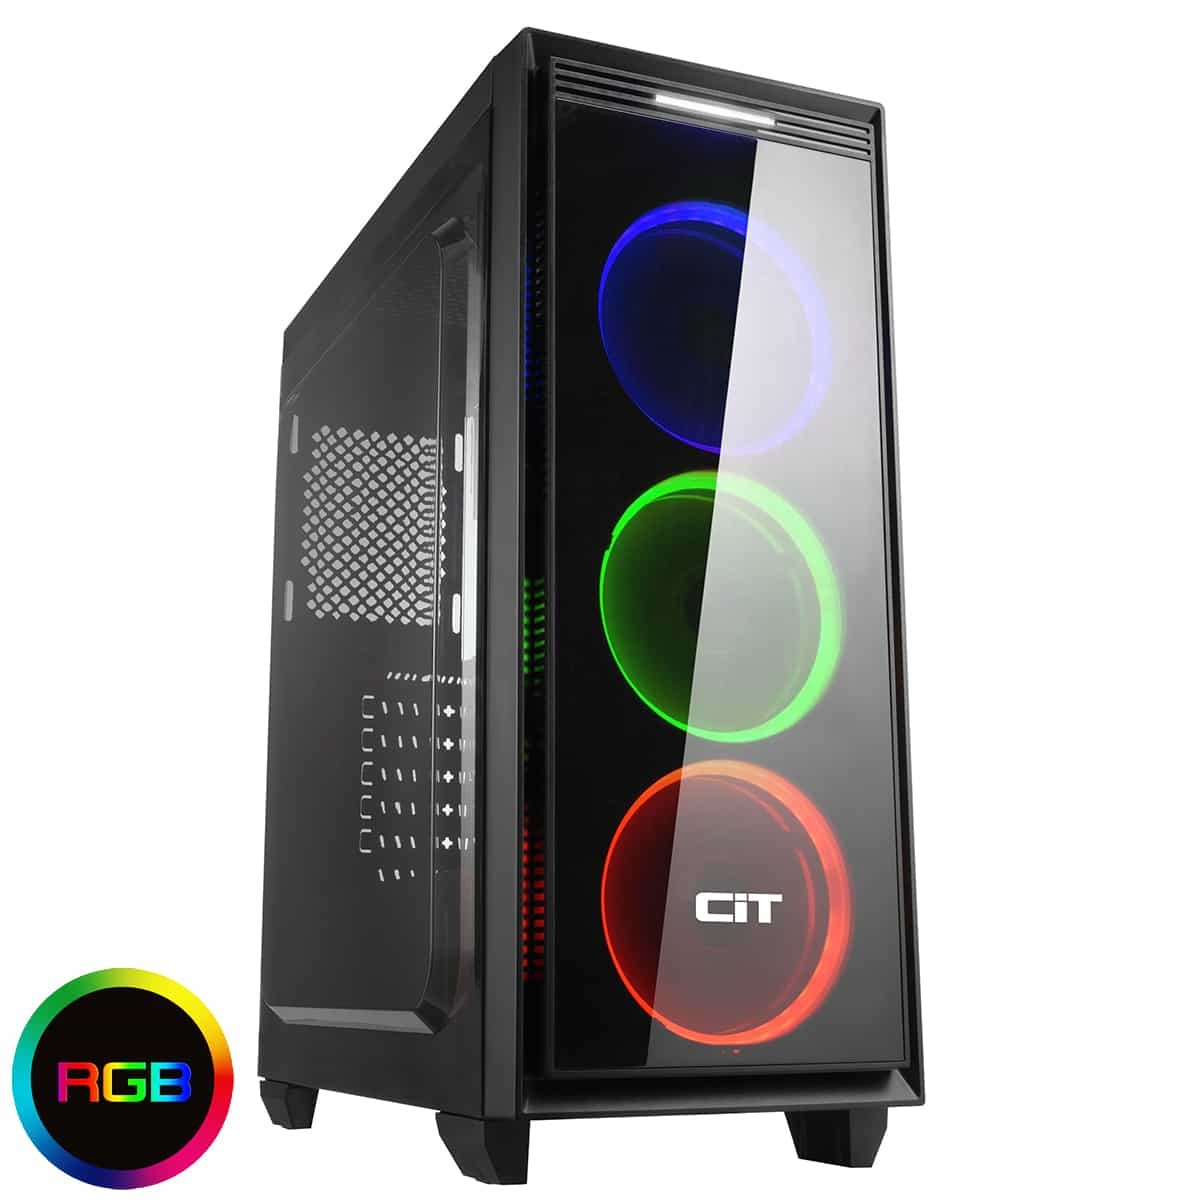 CiT Halo Midi RGB Gaming Case With 3 x Halo Single-Ring RGB LED Fans